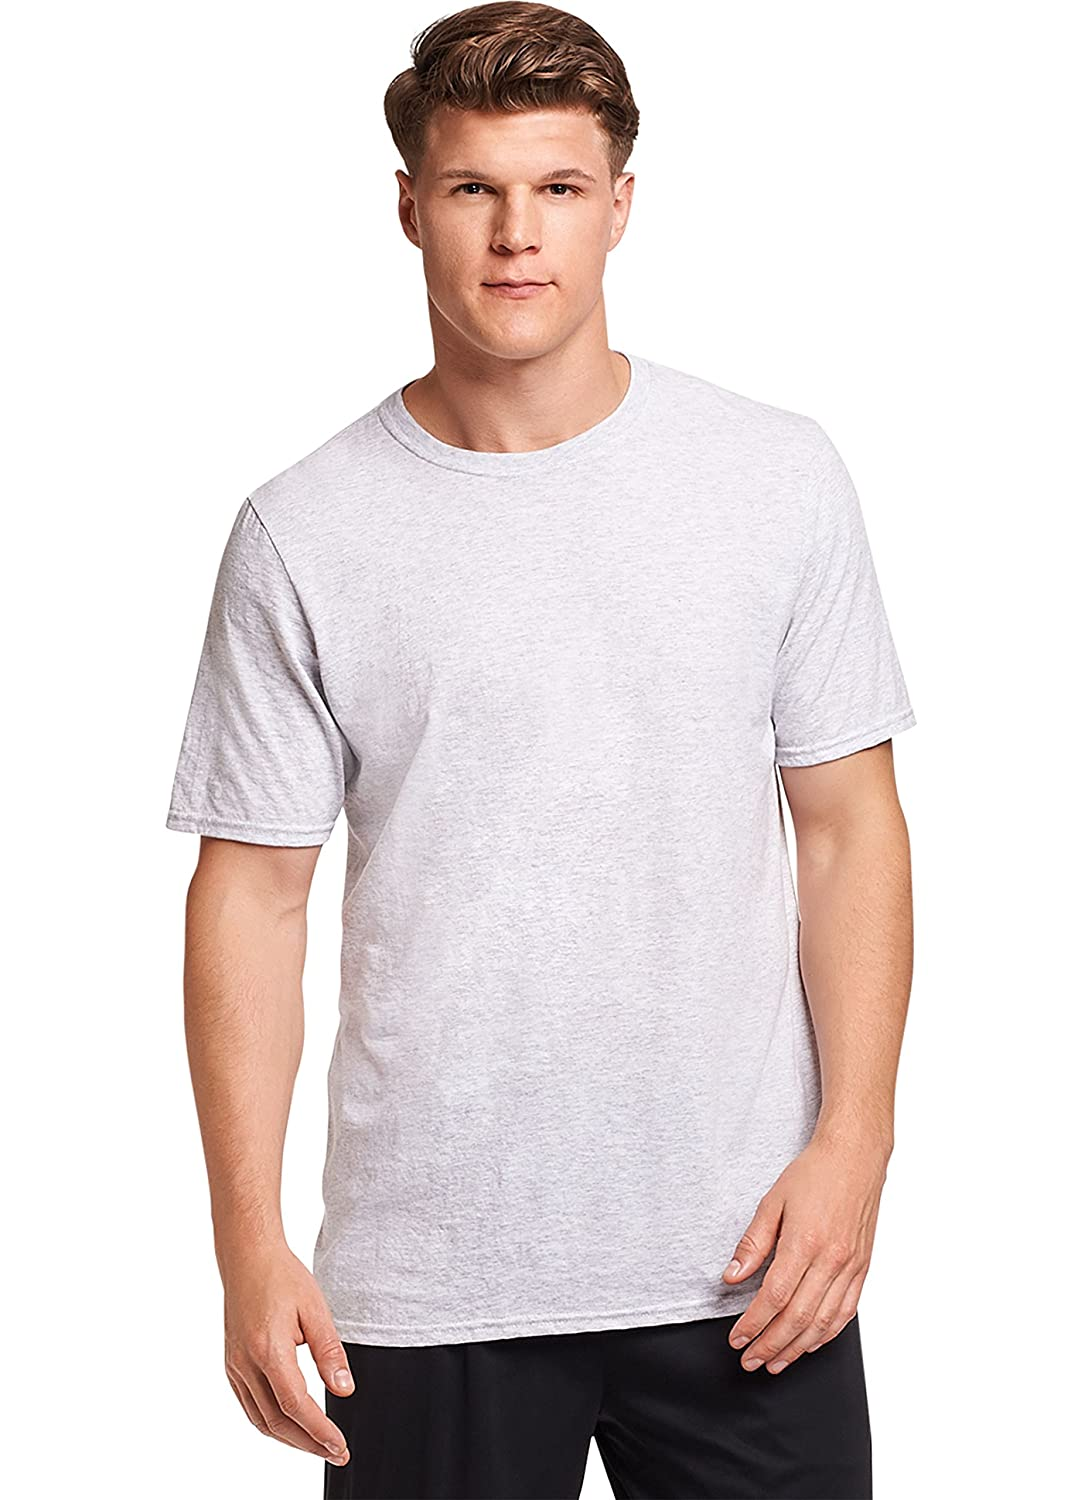 0a797d2c2 Russell Athletic Men s Essential Cotton T-Shirt at Amazon Men s ...